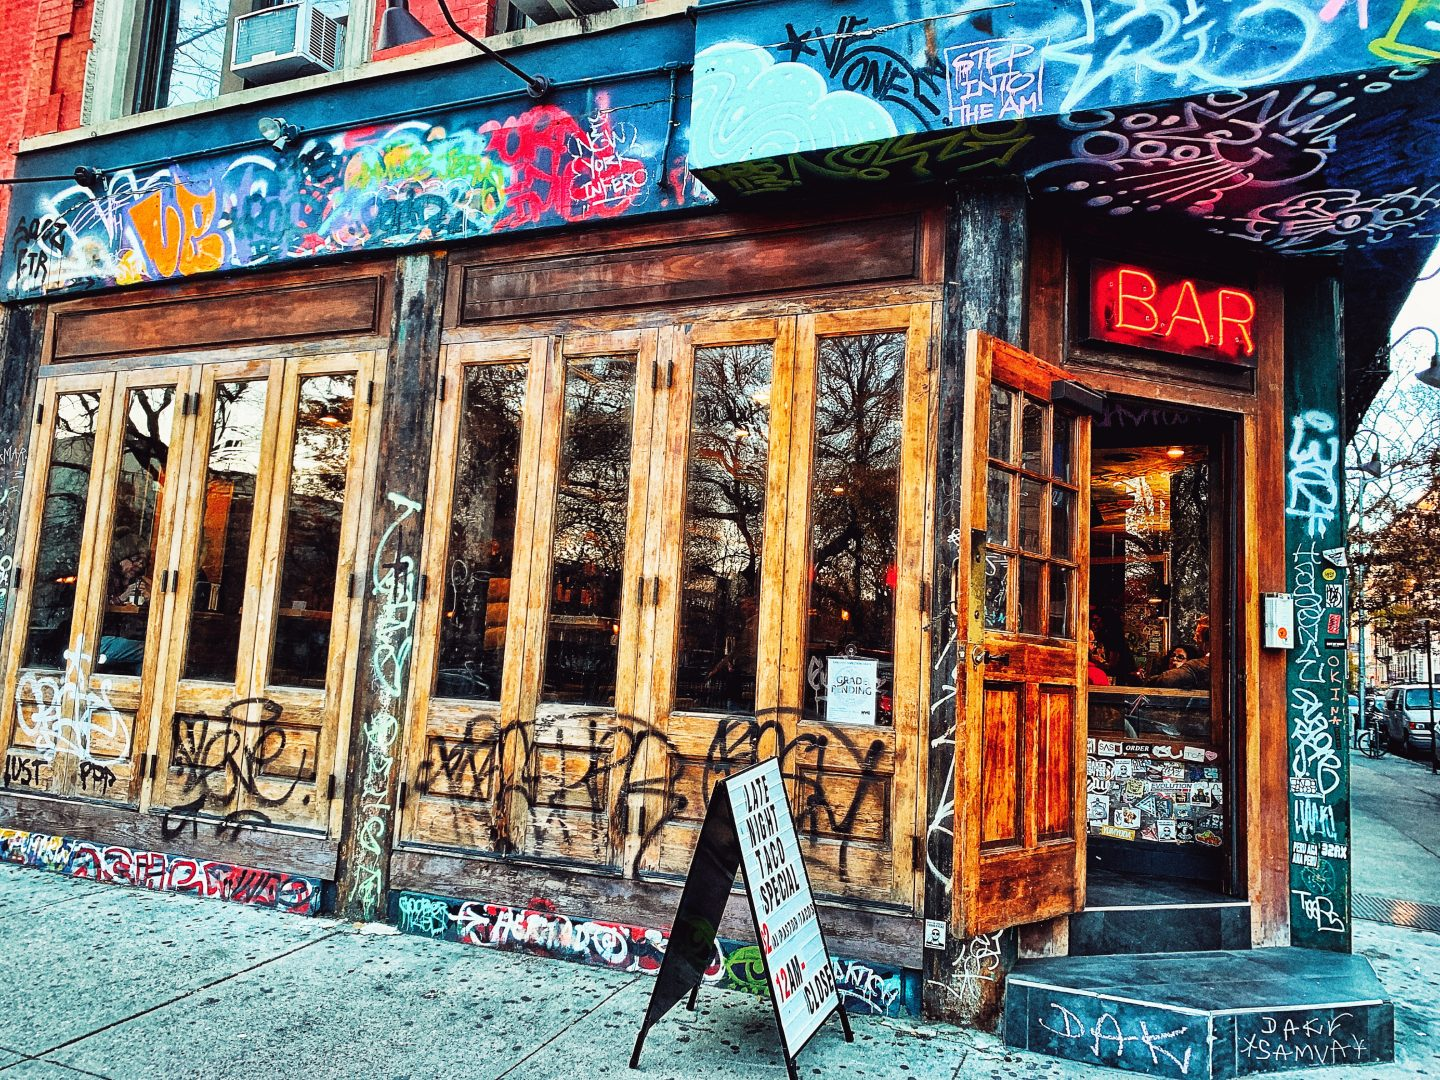 Bar in the East Village